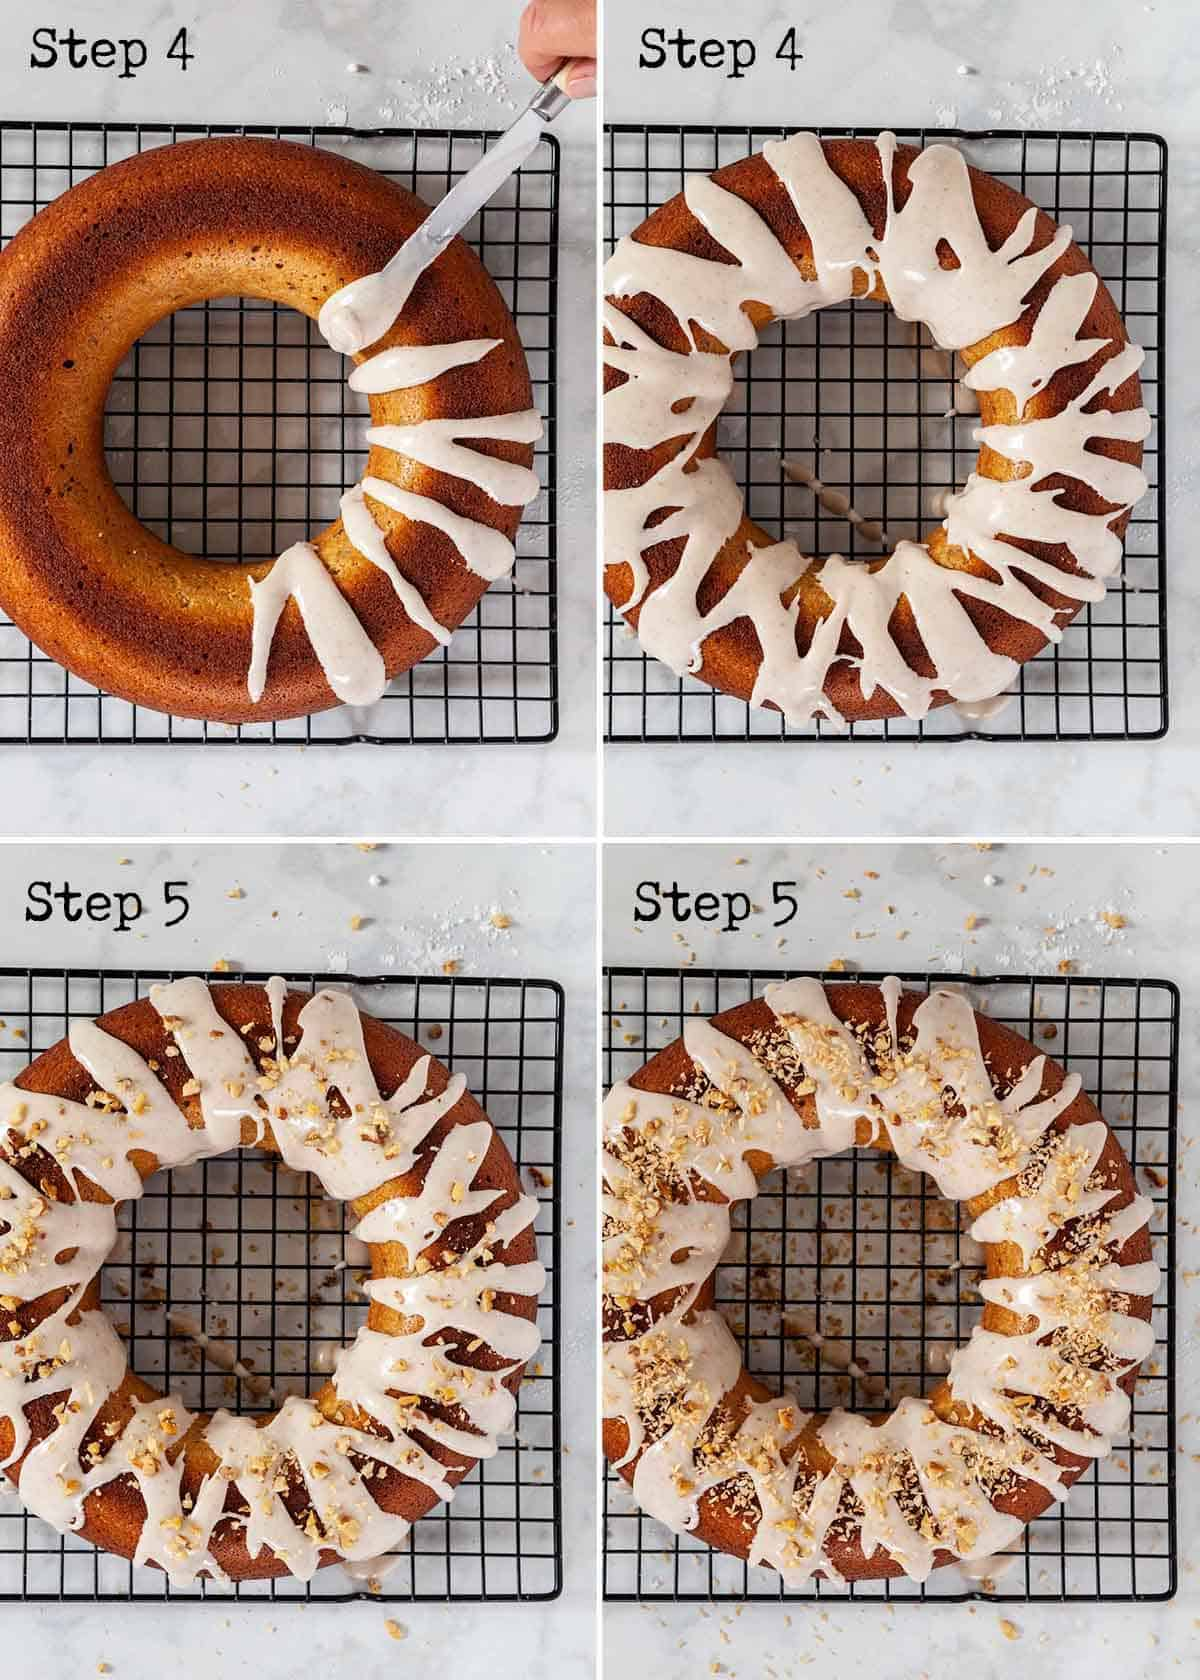 Collage of stages of decorating a pumpkin cake with icing, nuts and coconut